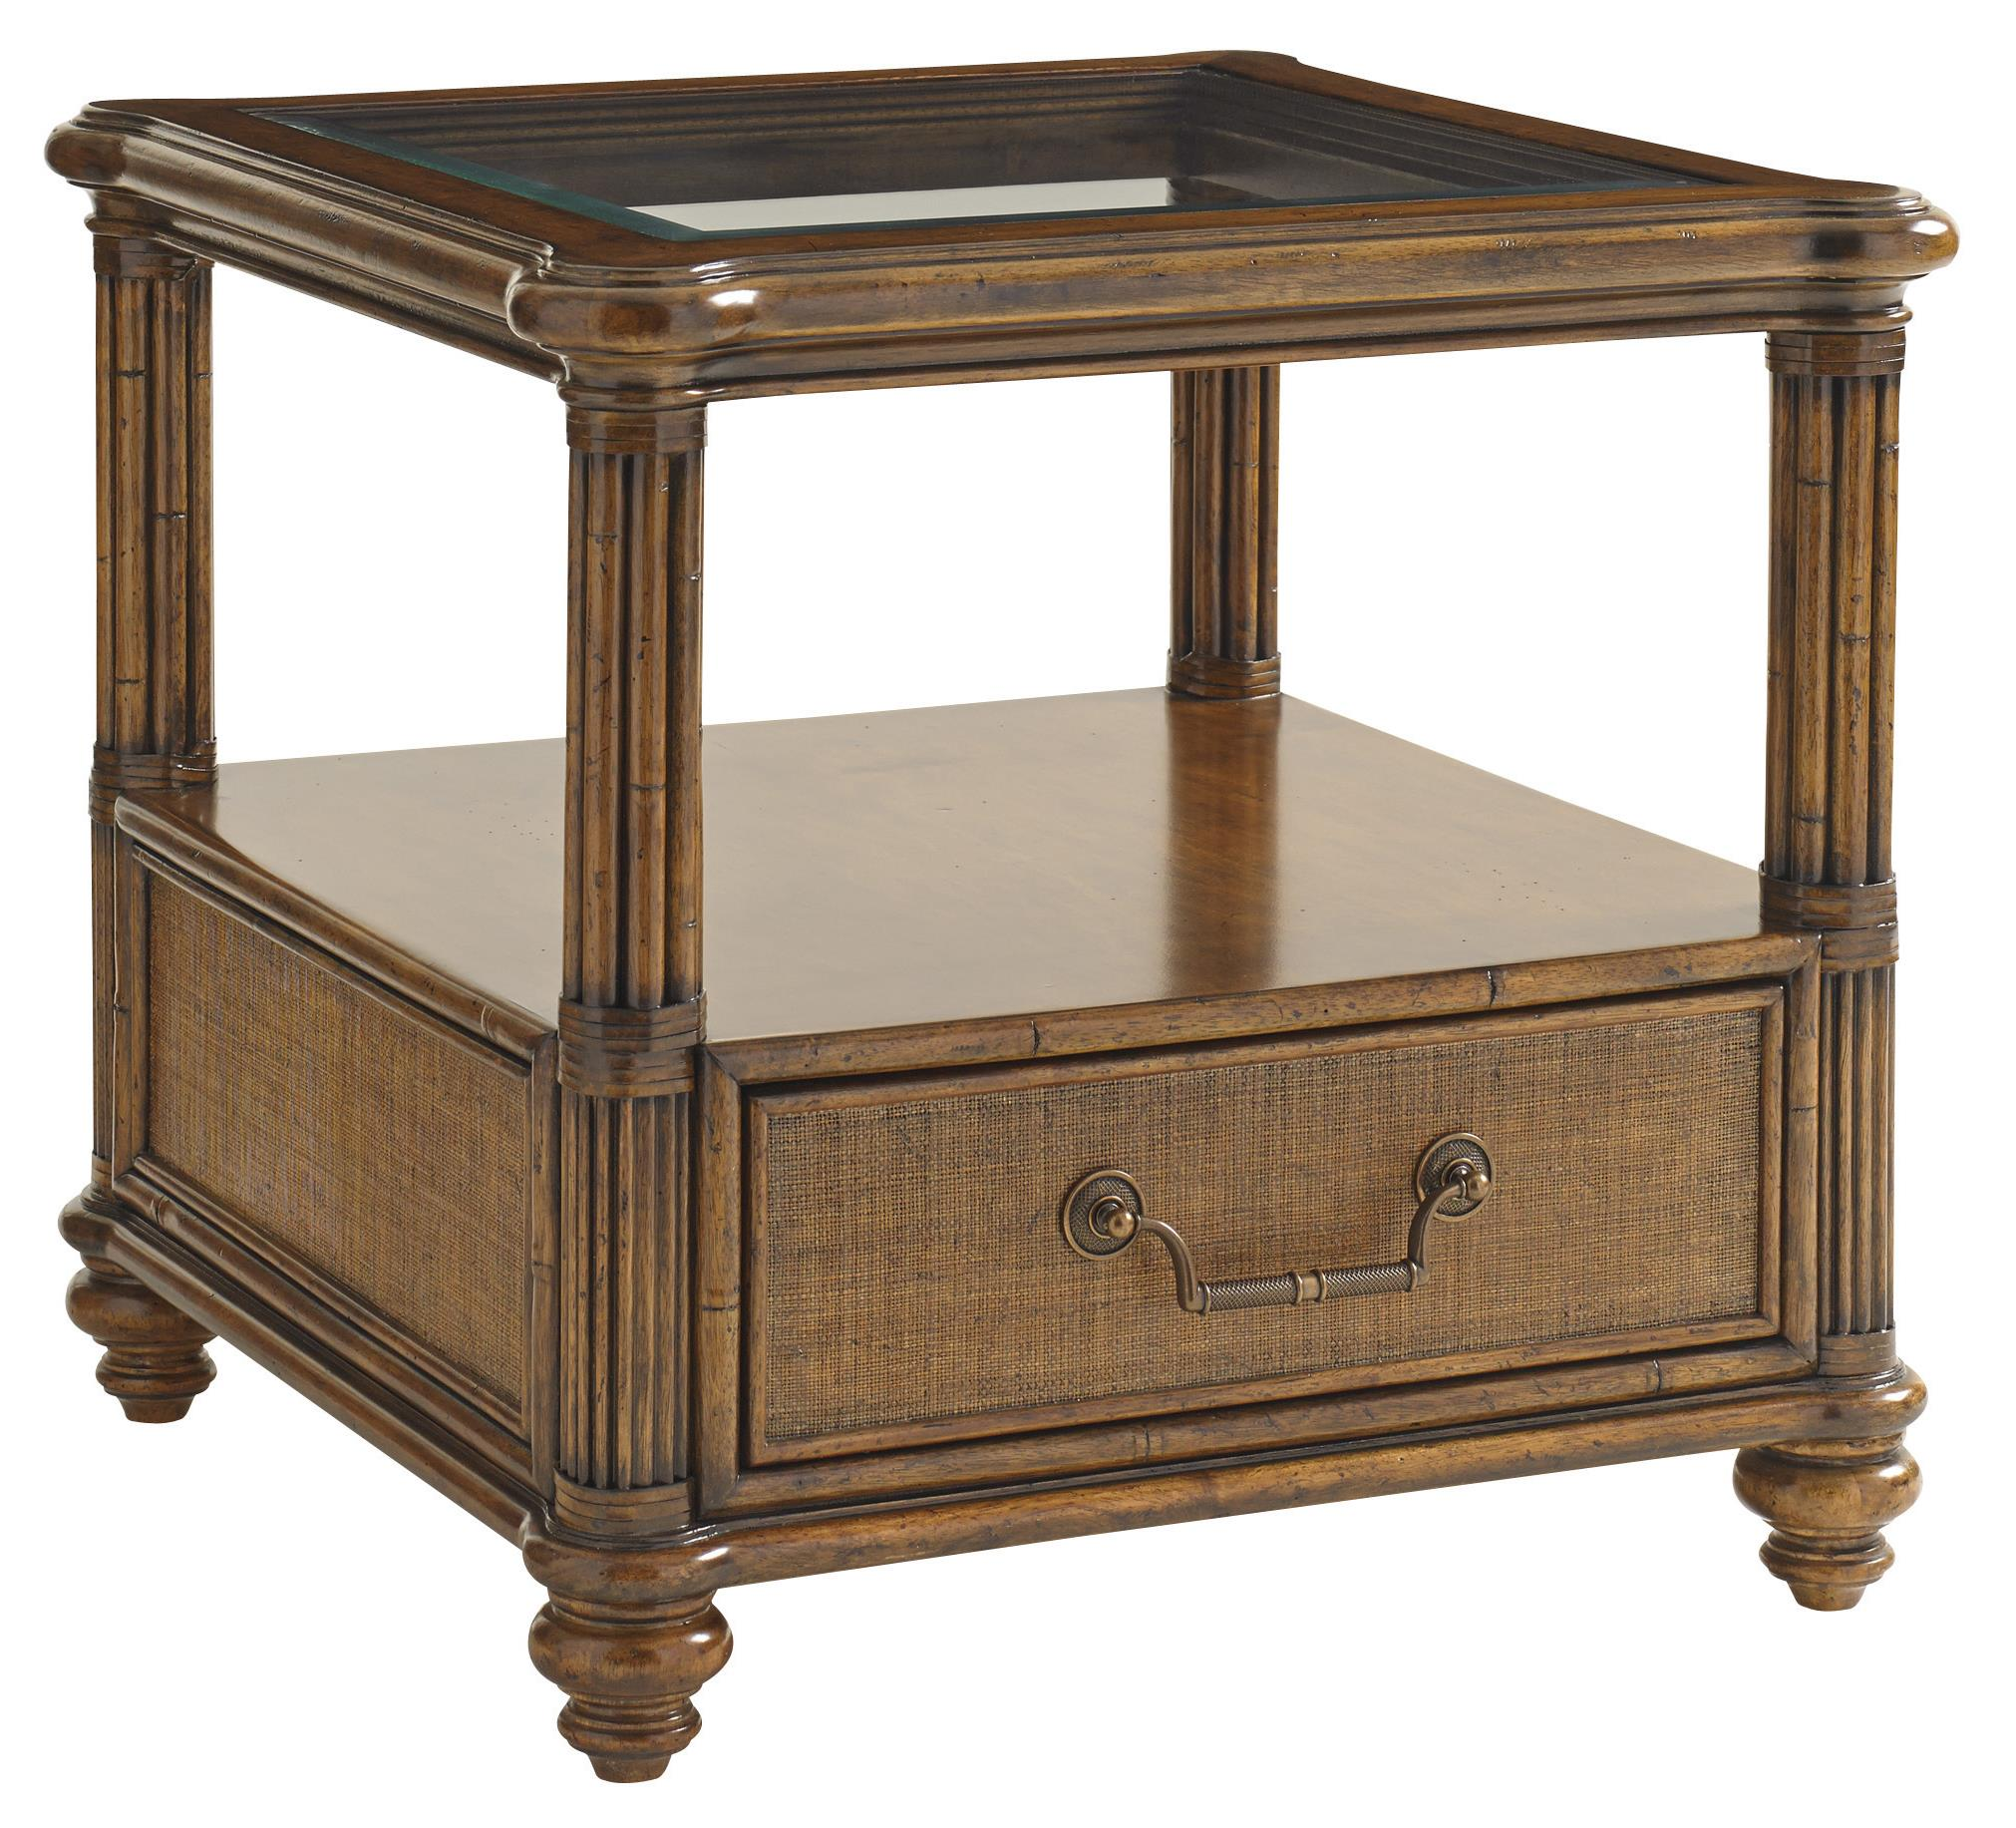 Tommy Bahama Home Bali Hai Bimini Square End Table - Item Number: 593-955